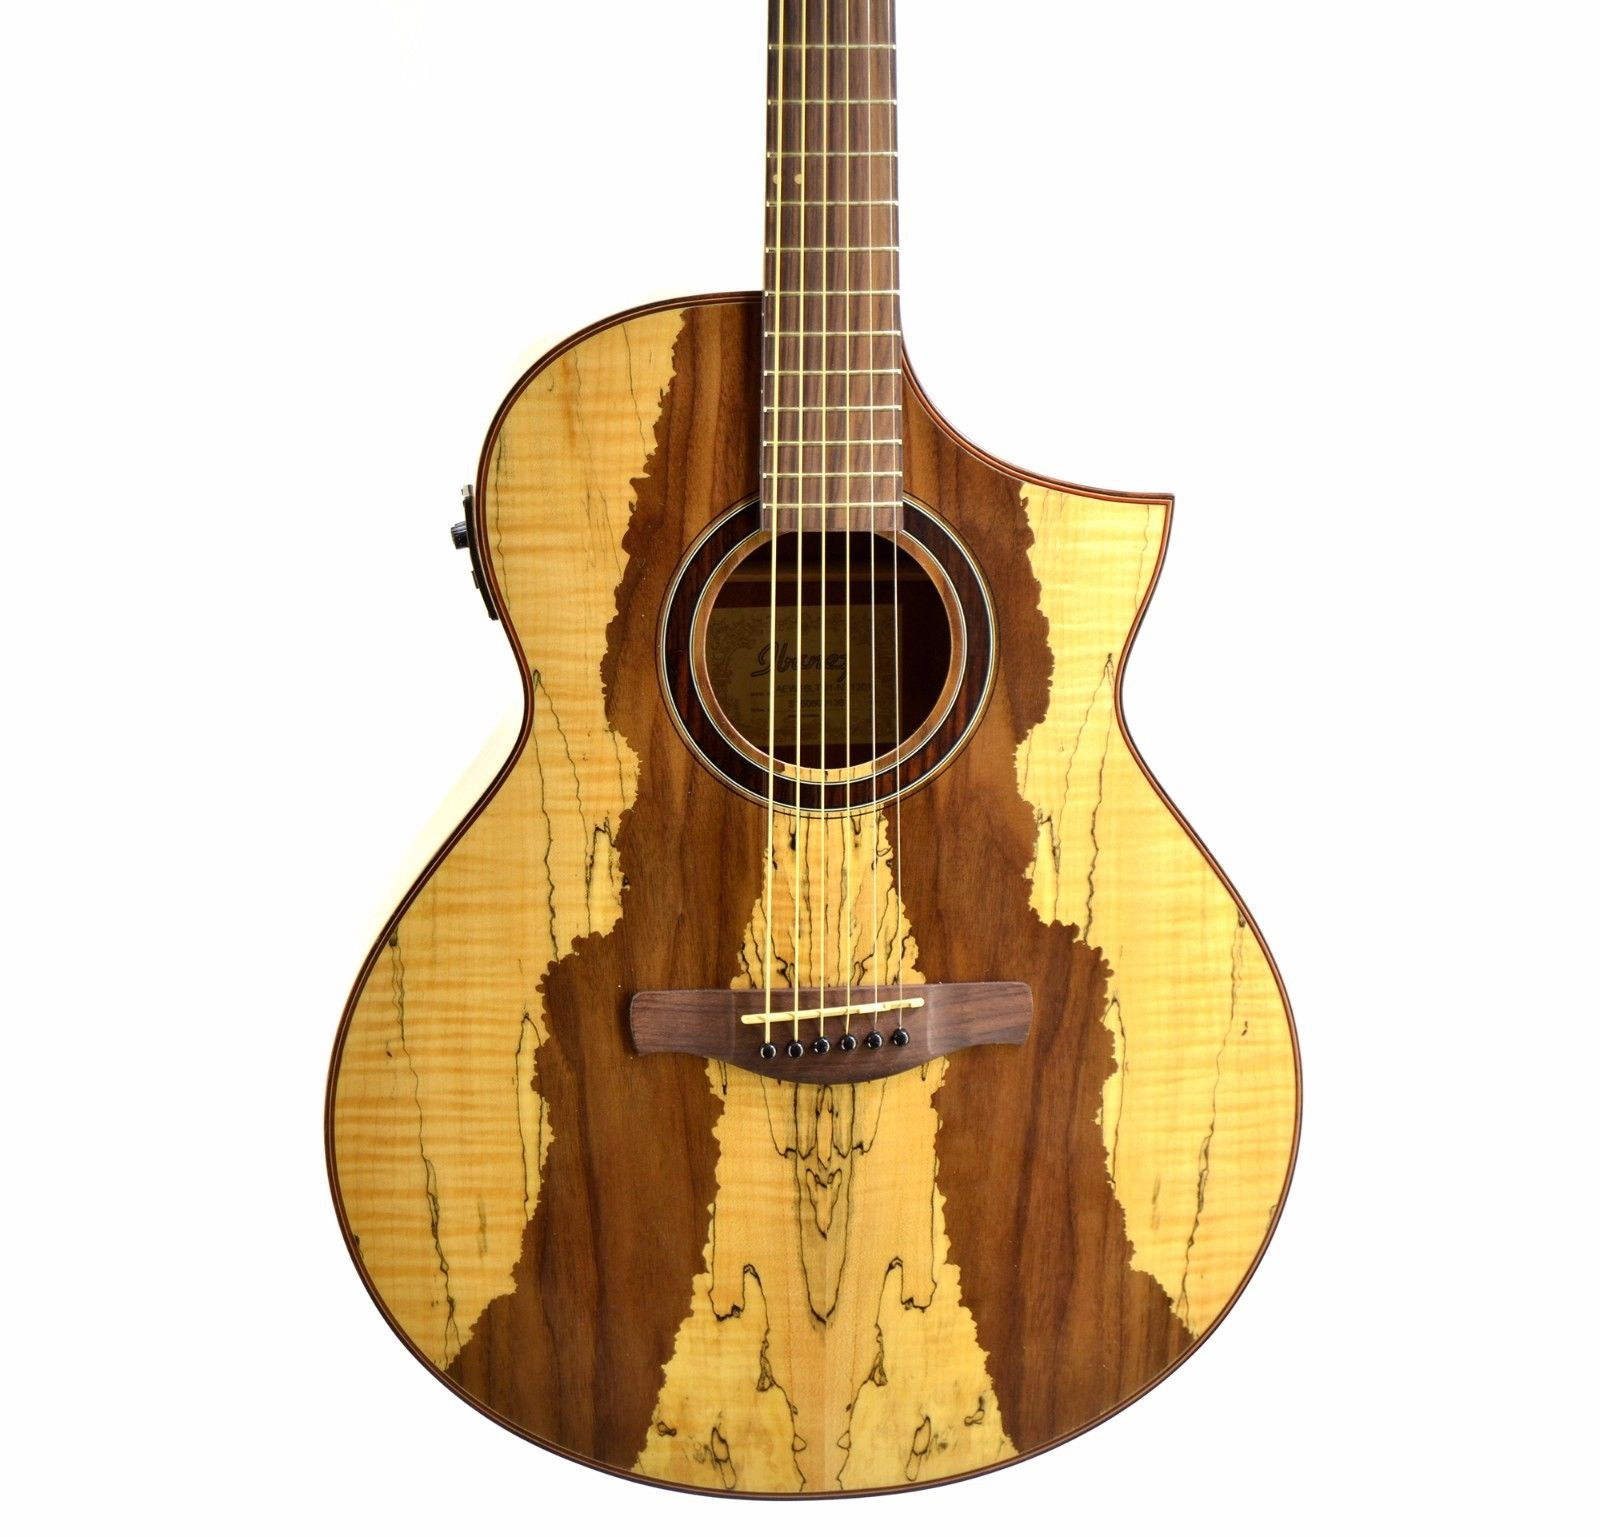 Ibanez Aew16ltd1 Limited Edition Exotic Wood Series Acoustic Electric Guitar B